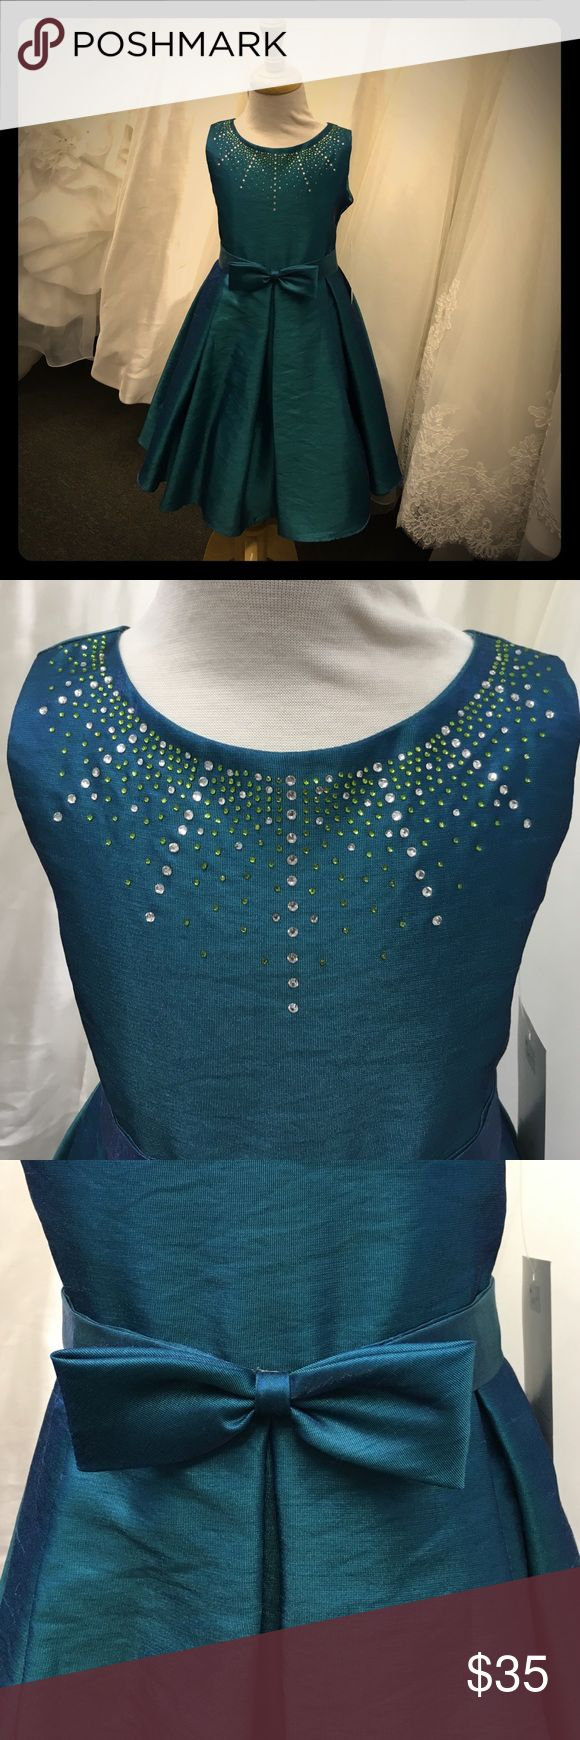 NWT Julia Lee dress style #J-1222 NWT beautiful iridescent teal dress with light green and silver beading along neckline with bow at waist and tie in the back. Offers welcomed Julia Lee Dresses Formal